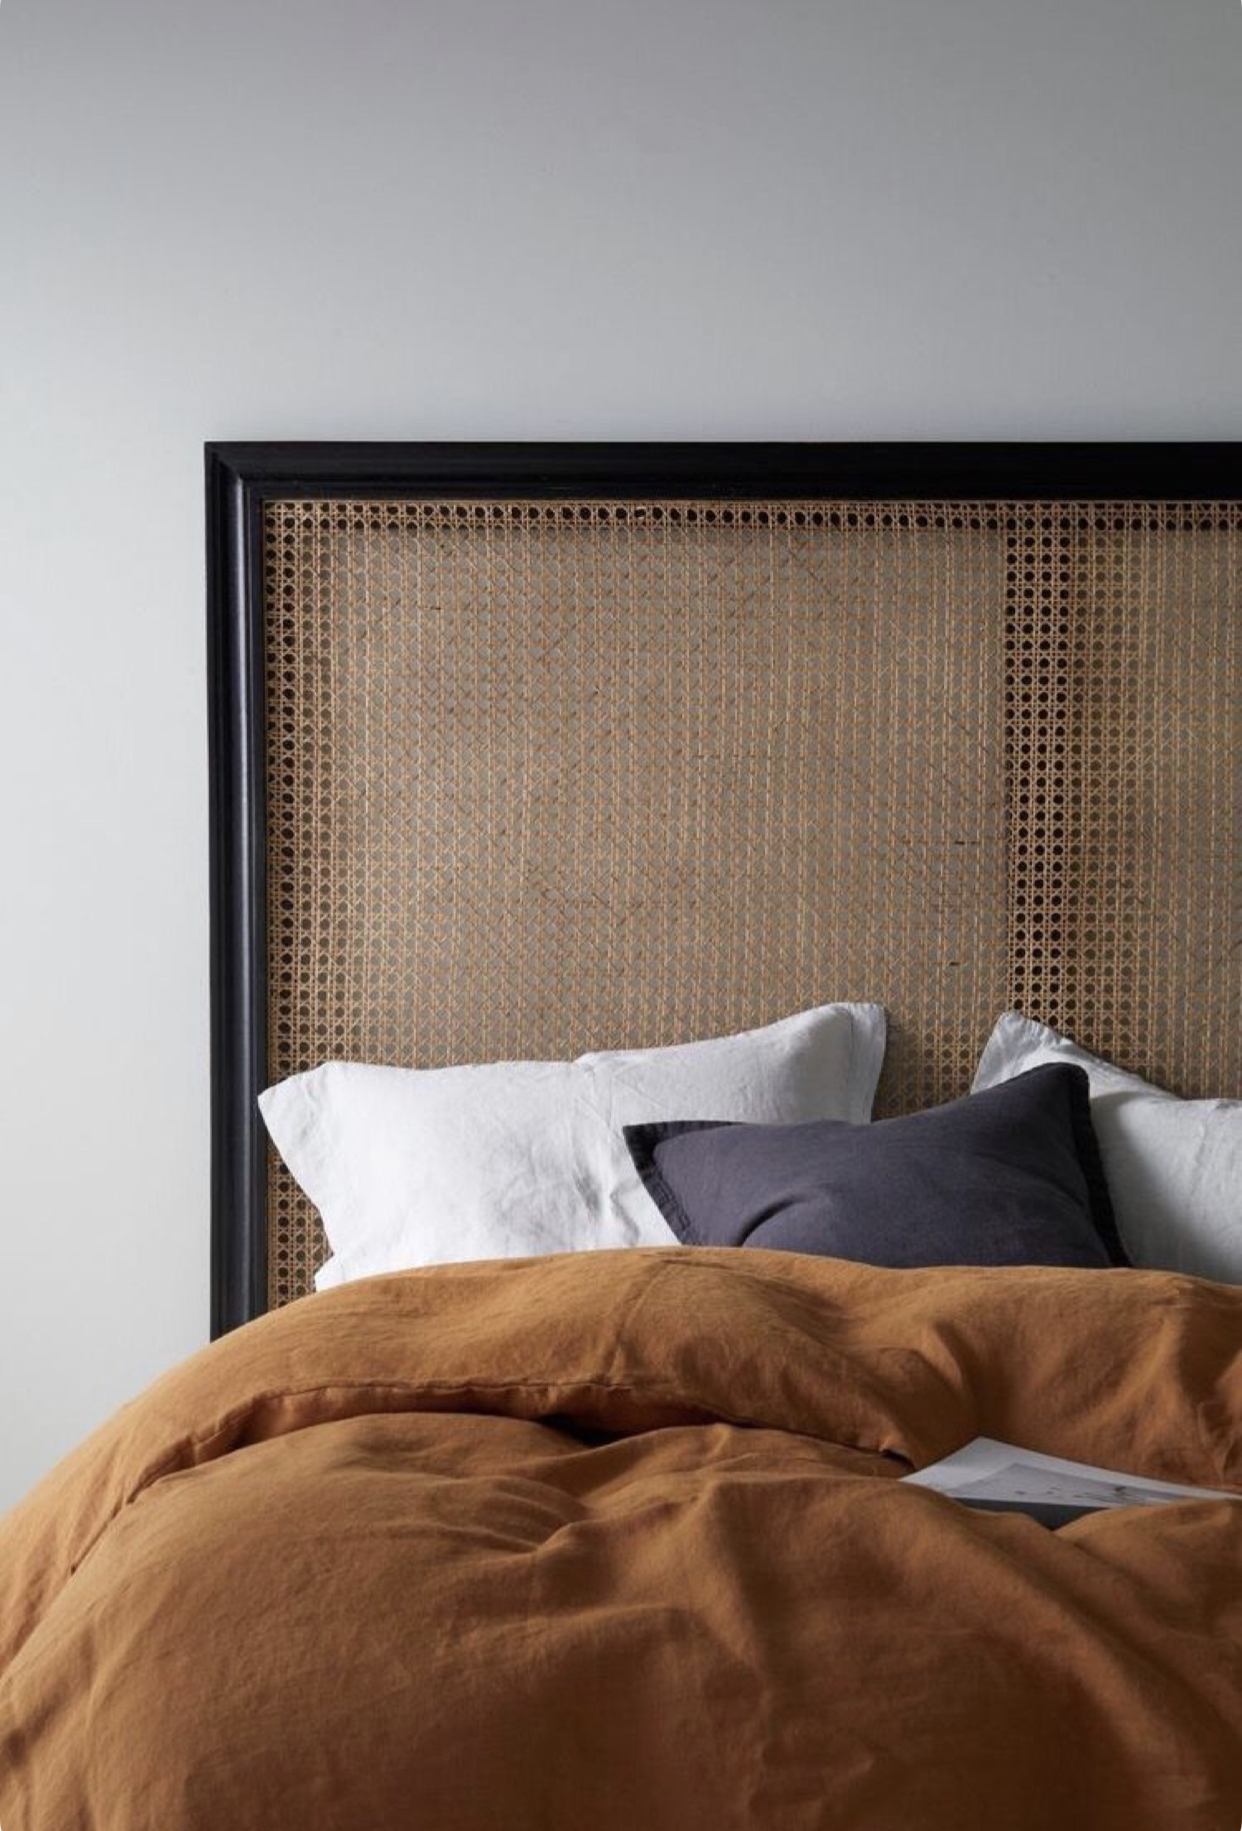 The  headboard image from  @istome_store  that sparked the room design - cane webbing was a must!